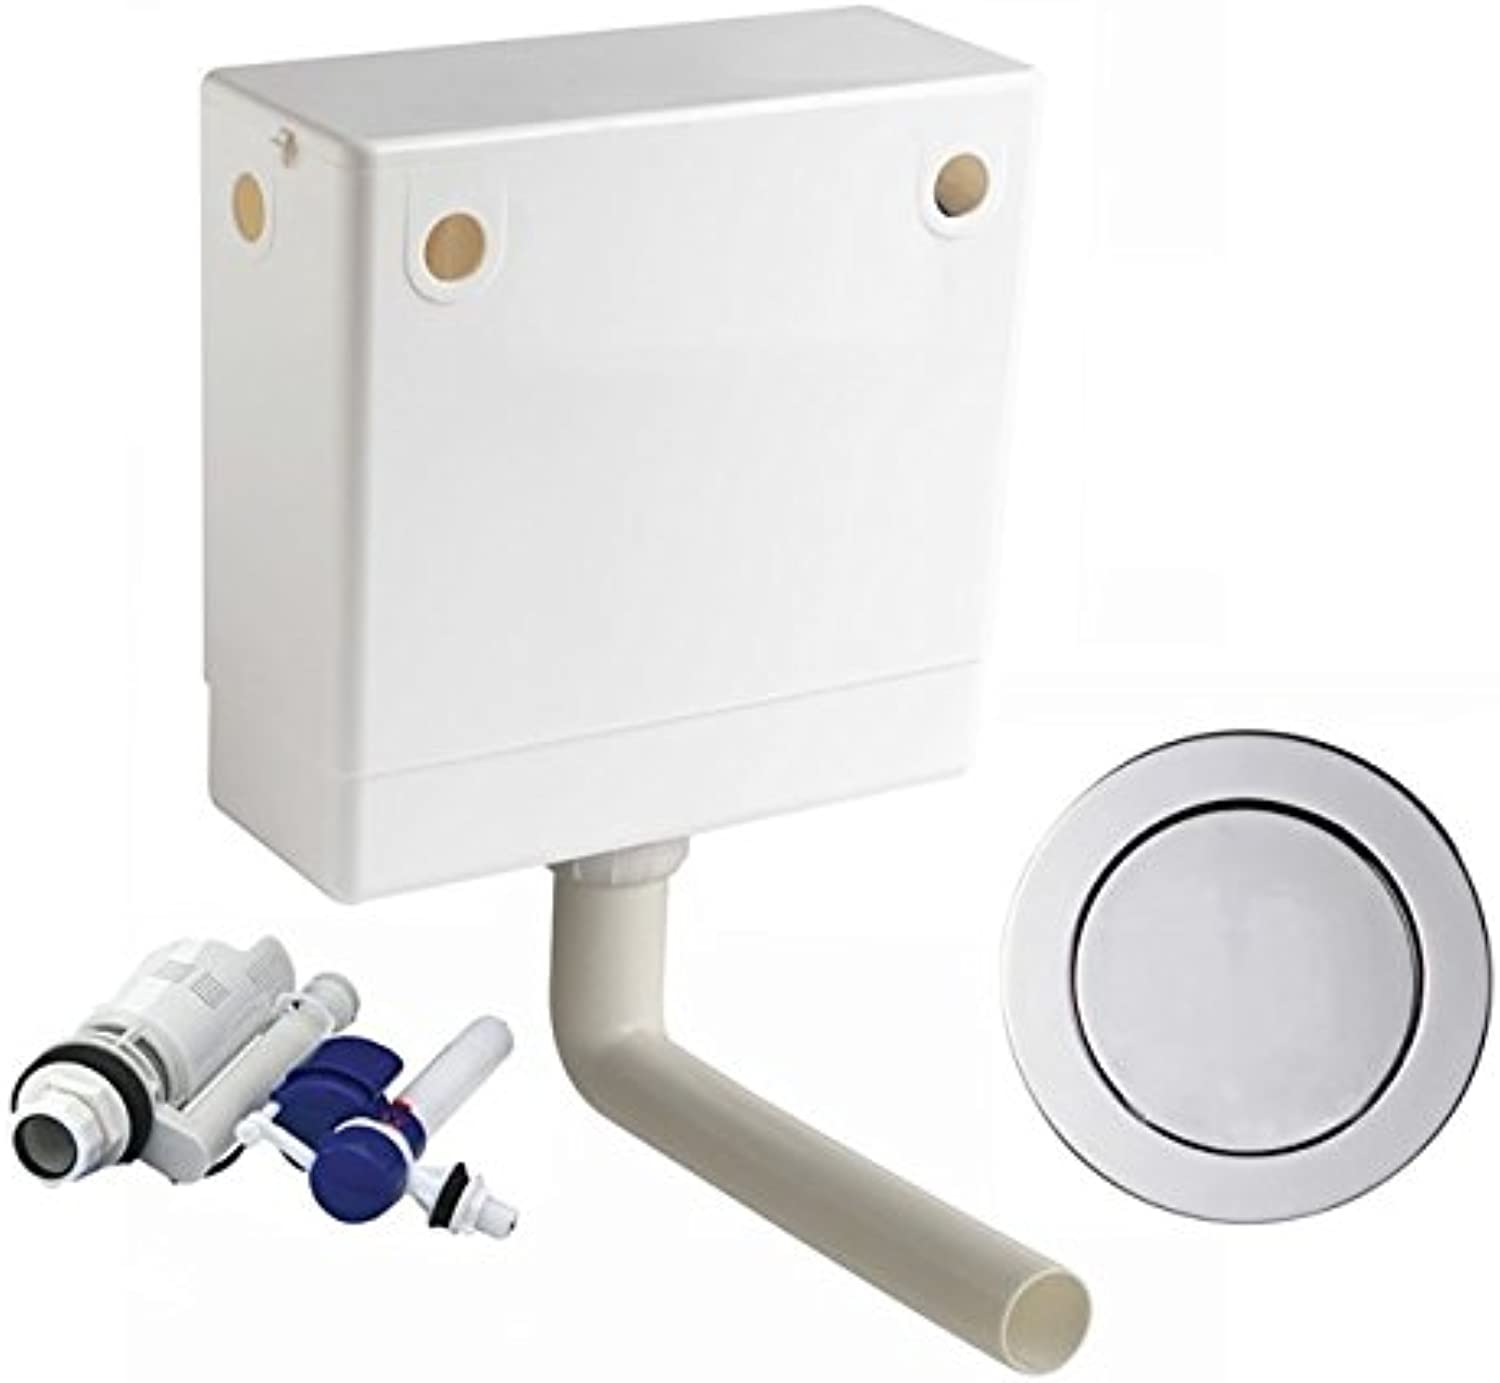 Macdee Pneu Compact Pneumatic Concealed WC Toilet Cistern Single Flush CPL41CP